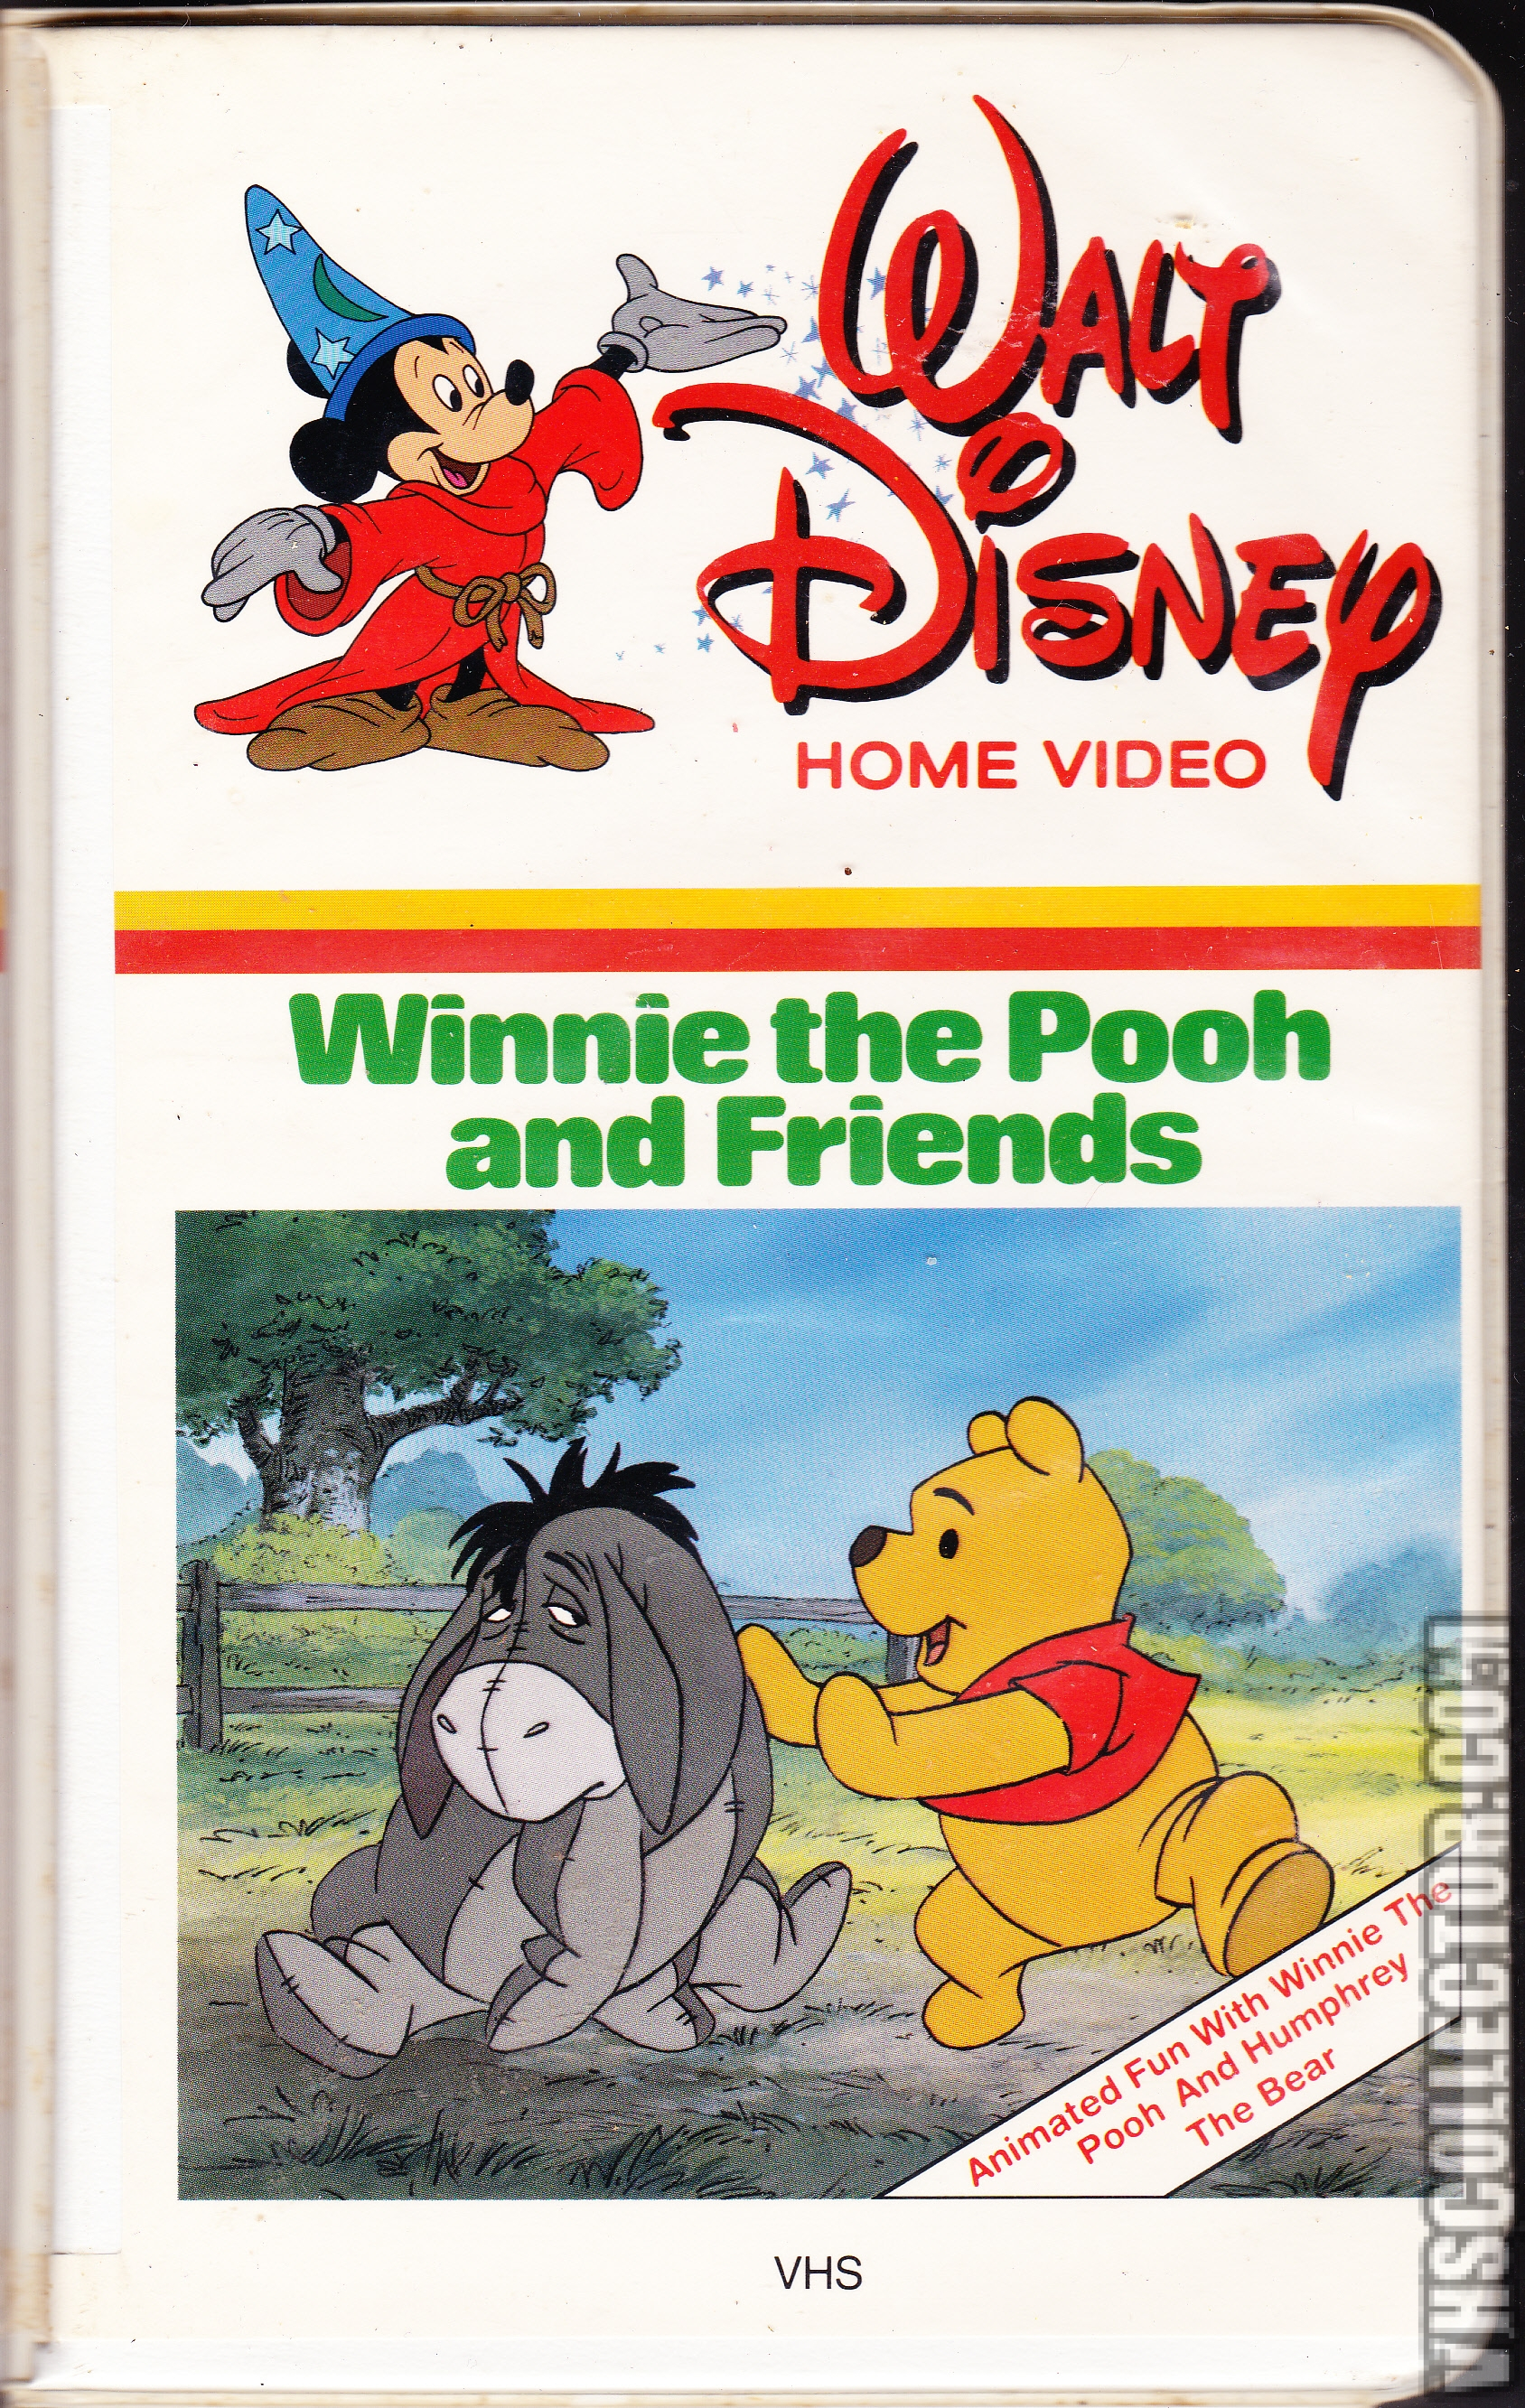 Miscellaneous Disney Animated Shorts Compilations Home